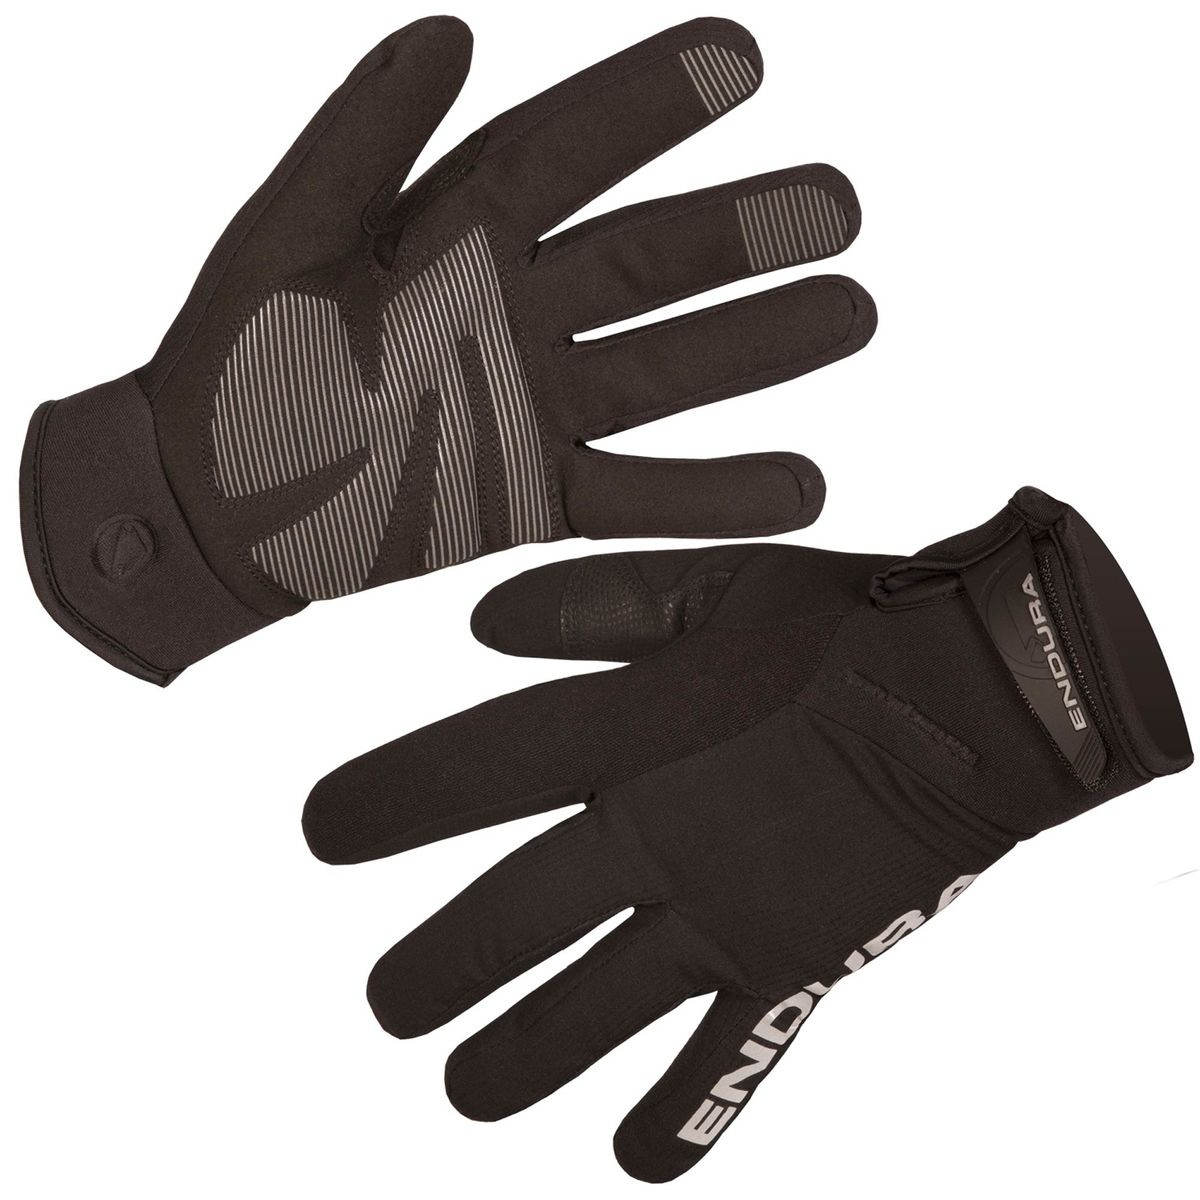 WMS STRIKE II women's full-finger cycling gloves